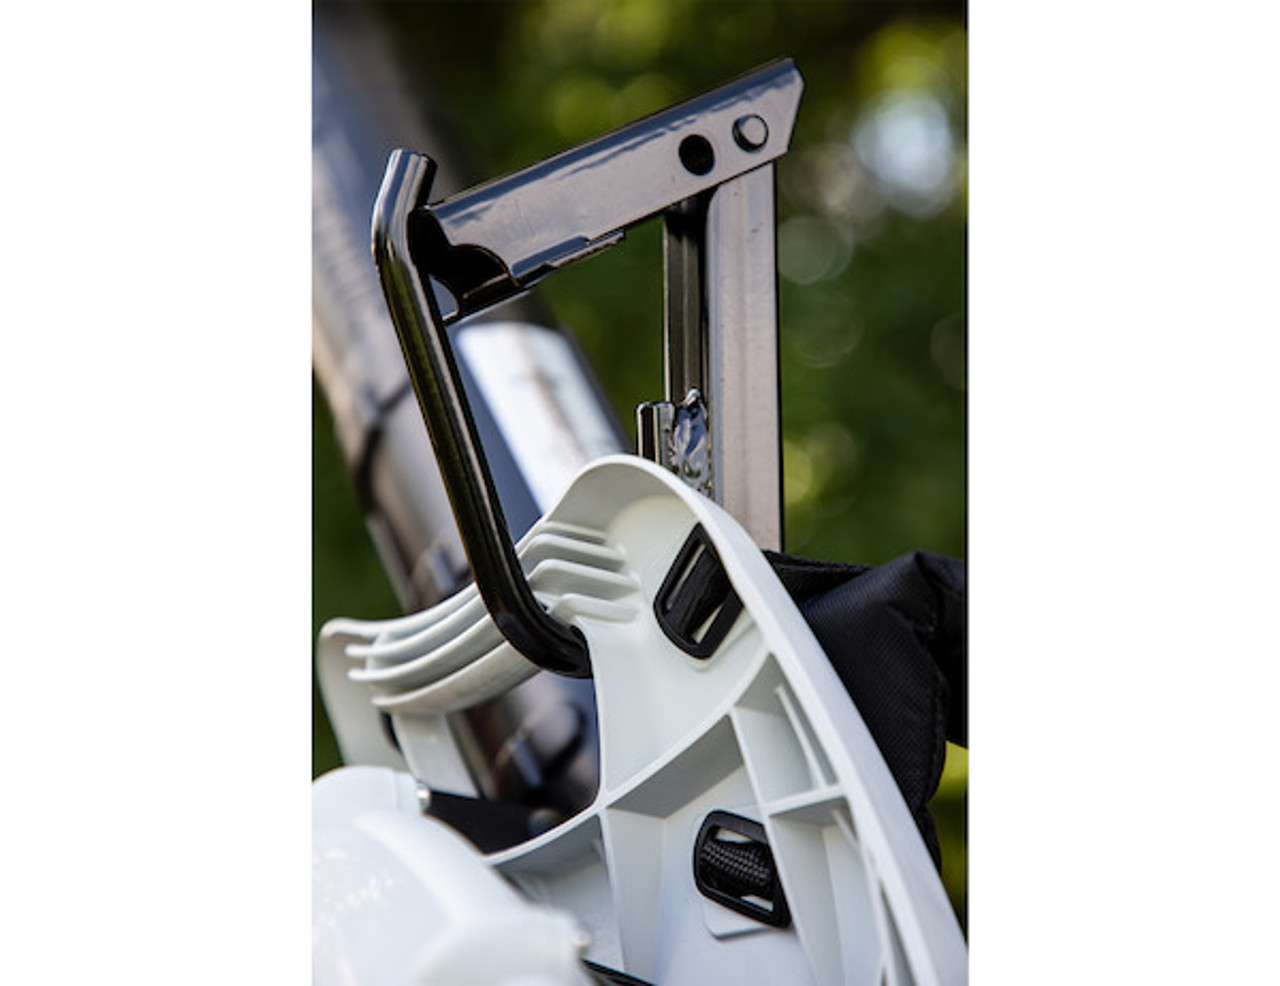 Buyers LT20 Backpack Blower Rack for Landscaping Trailers Picture # 5